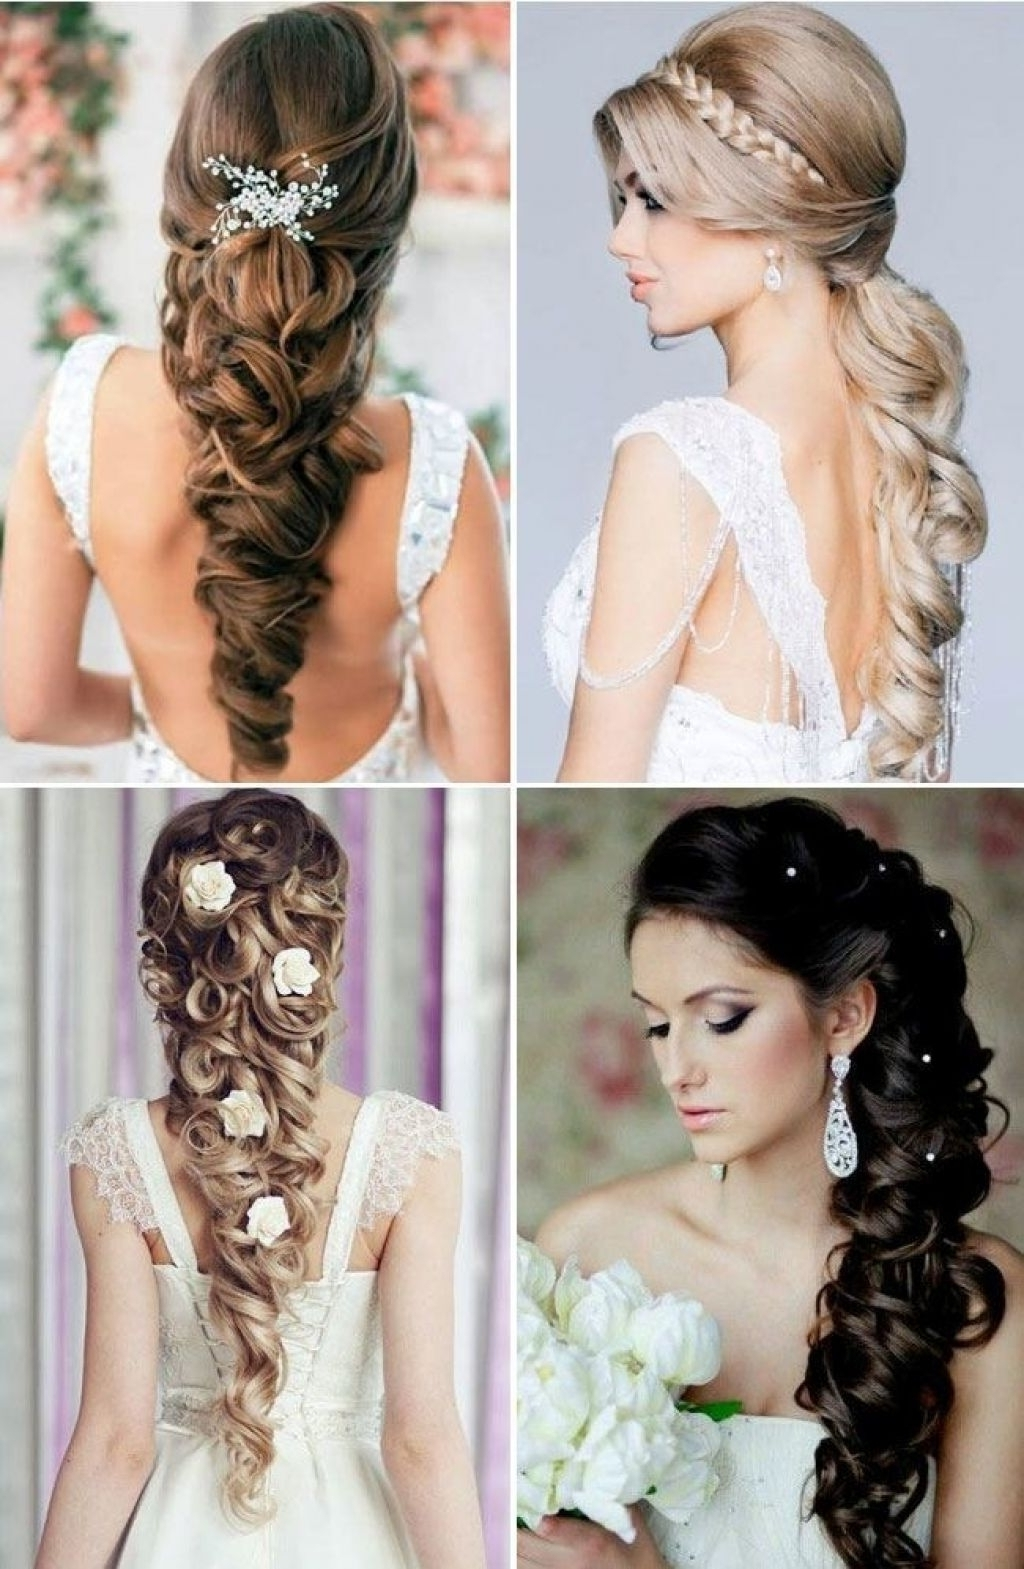 Bridesmaid Hairstyle For Long Hair Bridesmaid Hairstyles Updos For With Hairstyles For Bridesmaids Updos (View 5 of 15)